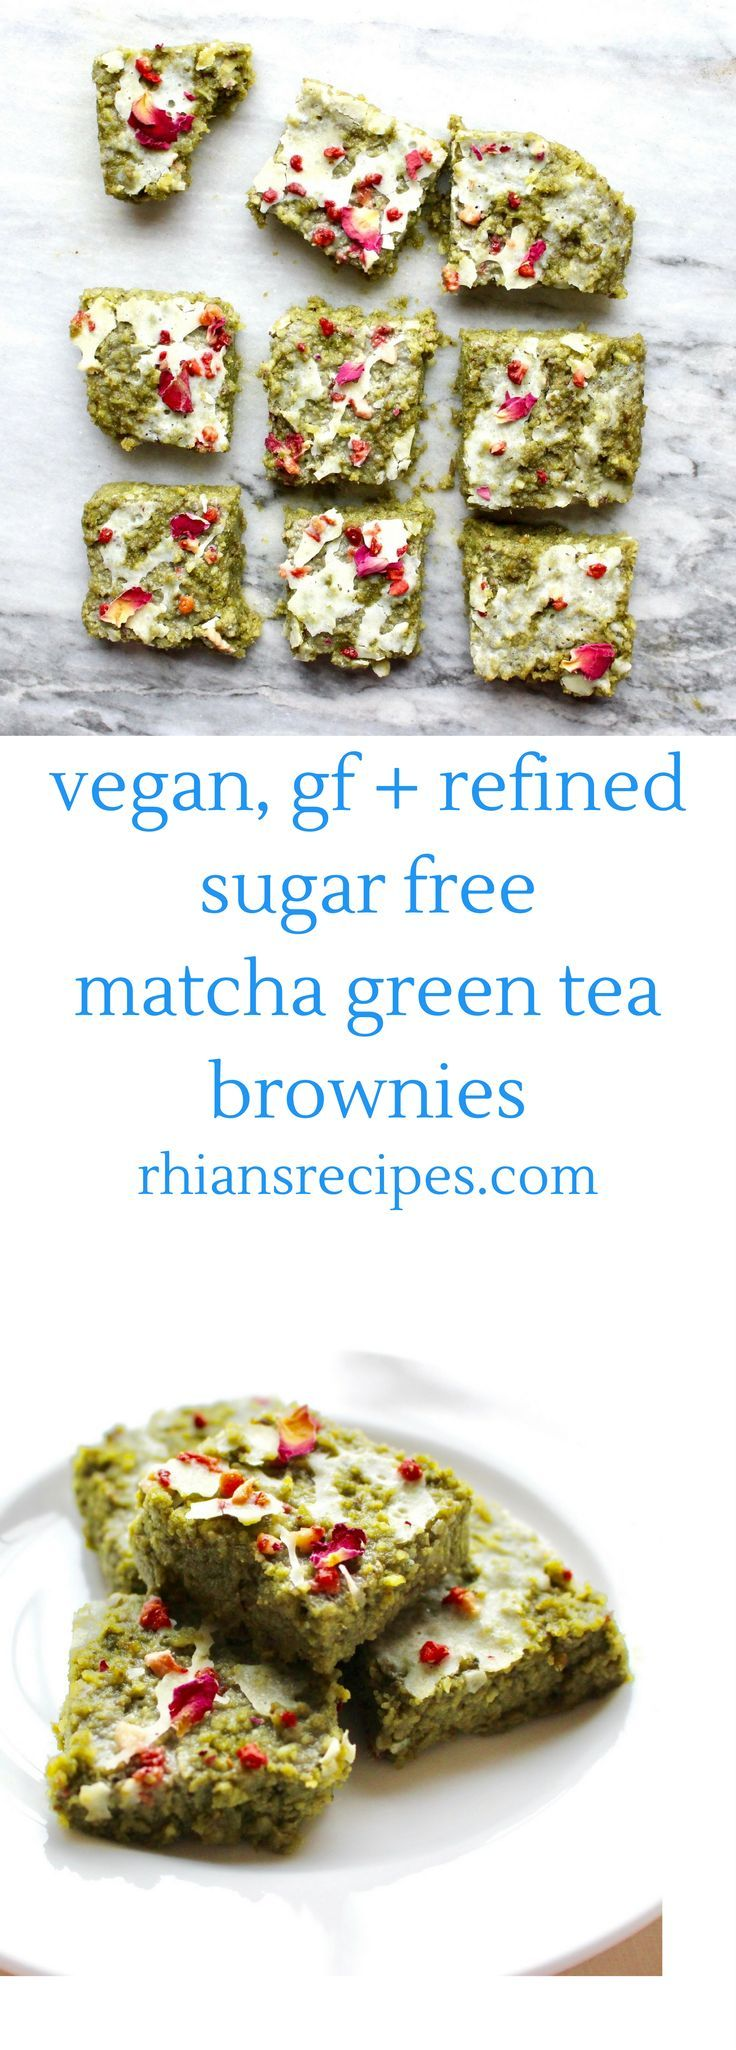 These Matcha Green Tea Brownies are vegan, gluten-free and refined sugar free. They also come with a lovely white chocolate icing!